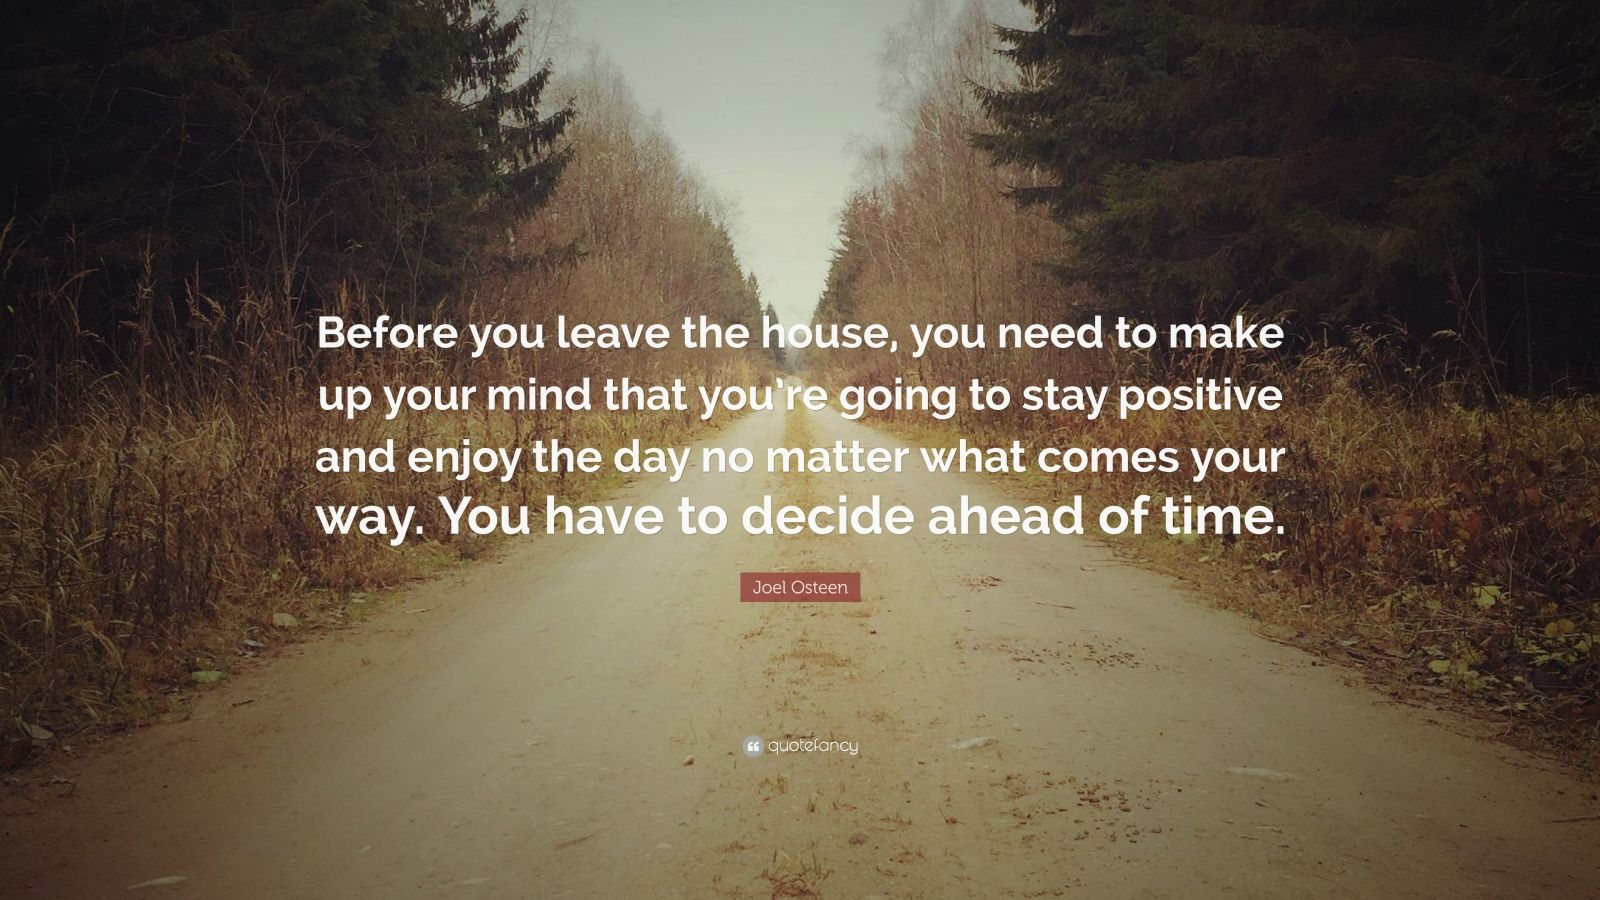 "Joel Osteen Quote: ""Before you leave the house, you need to make up your mind that you're going to stay positive and enjoy the day no matter what comes your way. You have to decide ahead of time."""